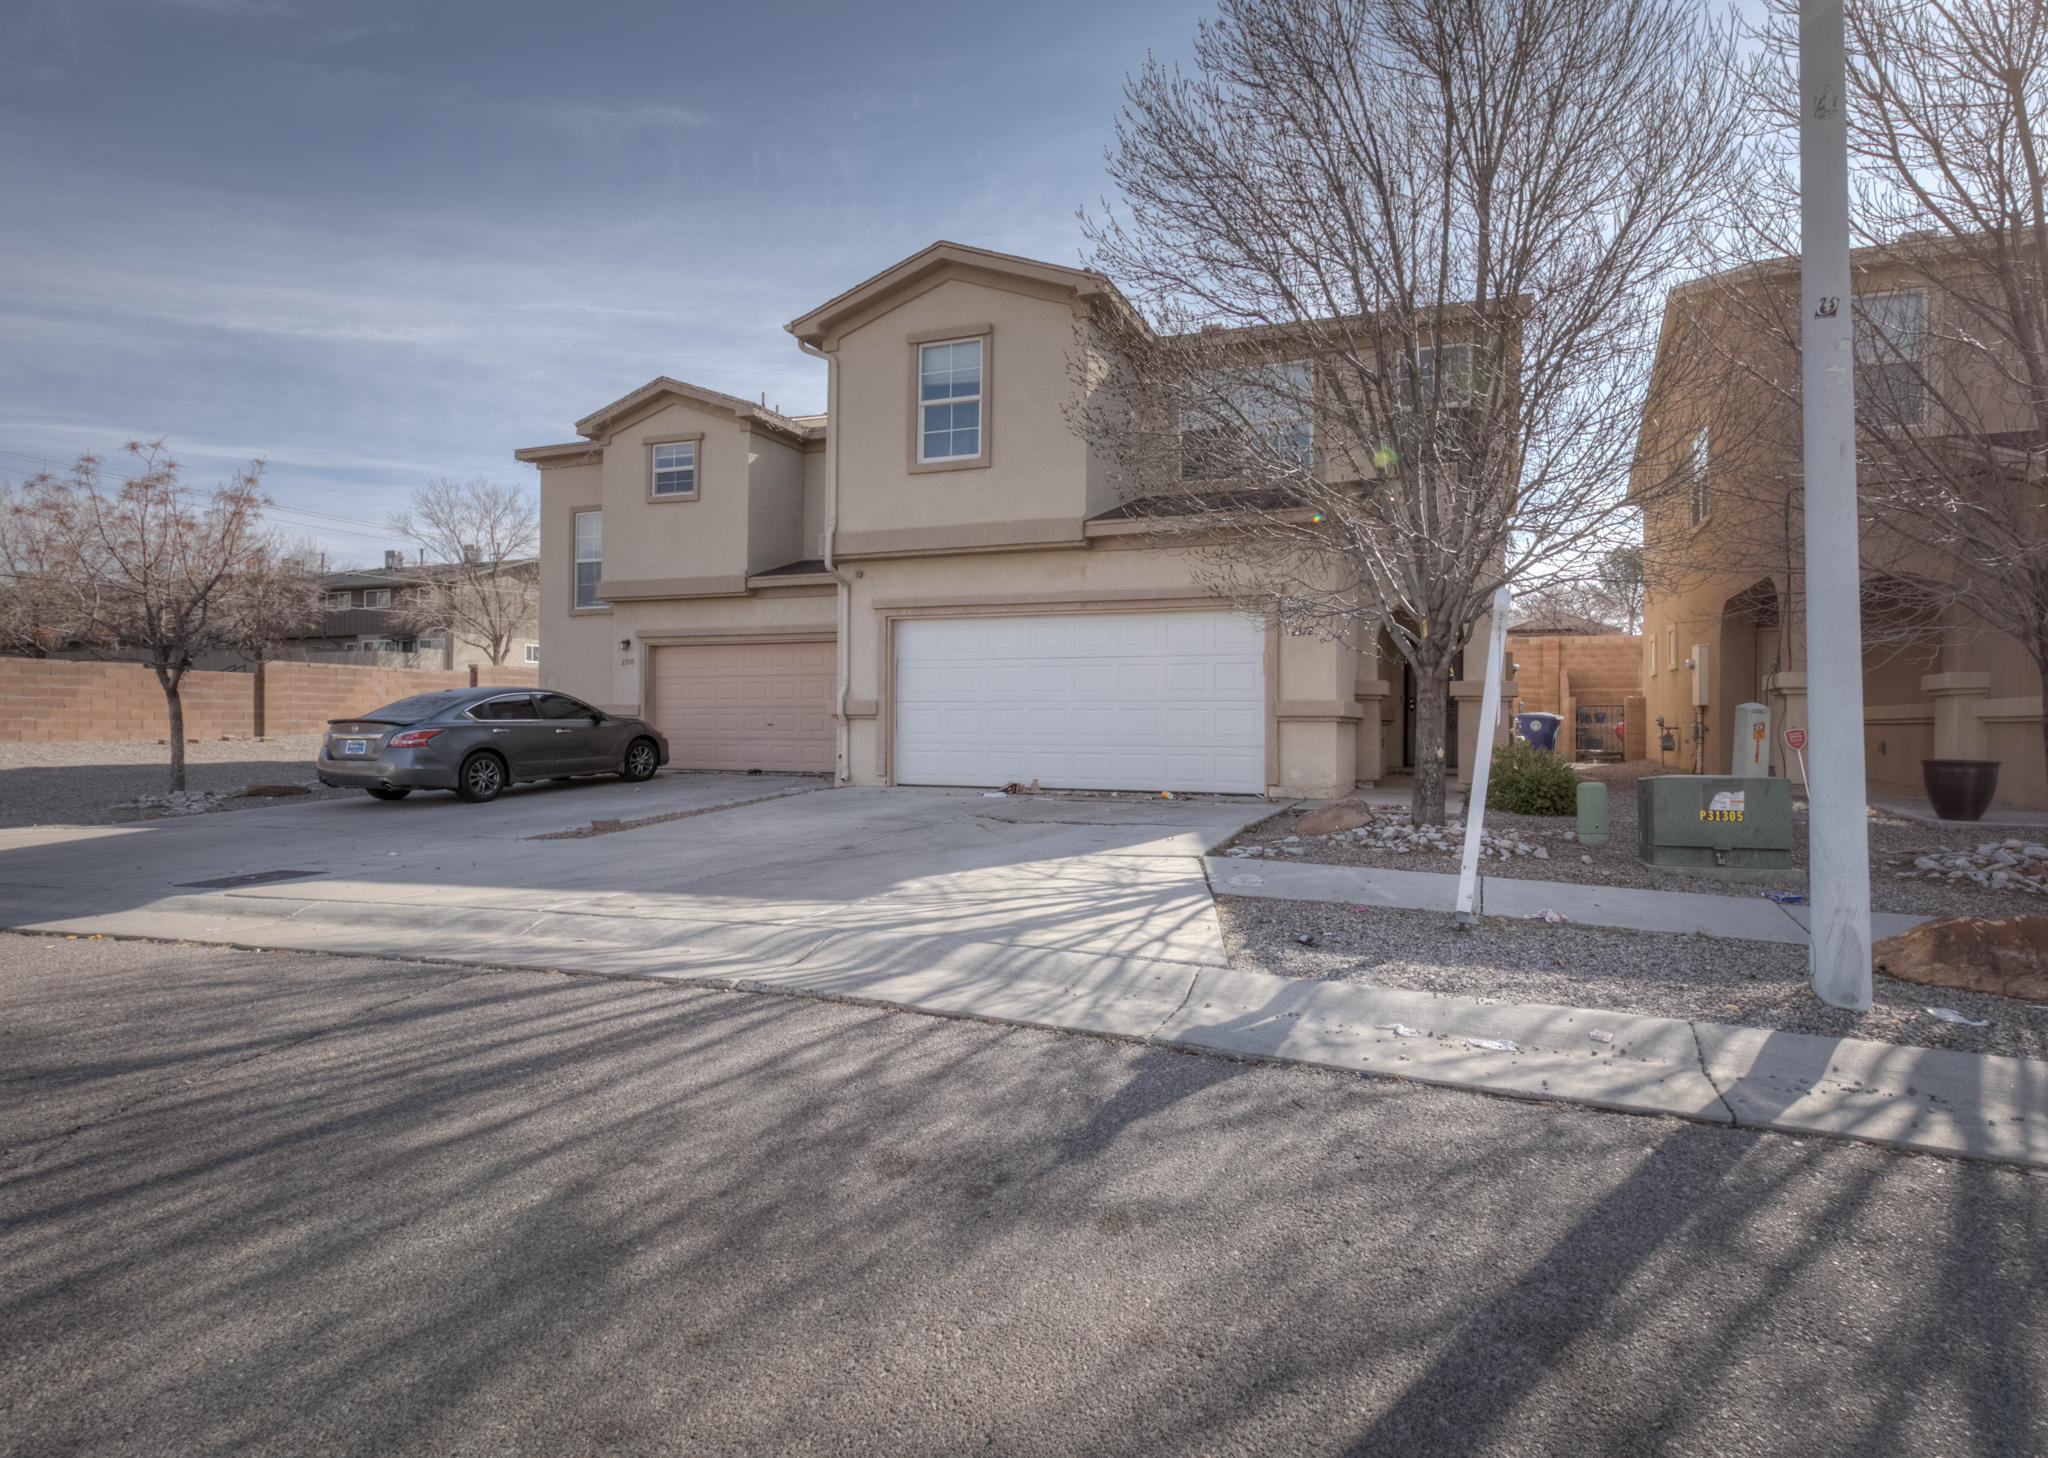 This Beautiful spacious townhome is located near UNM, the Airport & the freeway with easy access to anywhere in Albuquerque. The master bedroom is bright and is open to the spacious bathroom with plenty of room for two people. This Home has two living areas, one upstairs and one downstairs. The open floor plan creates a inclusive atmosphere whether your are cooking or just hanging out in the living room. The front and backyards are easy to maintain for the busy professional. Come live the Urban life in Albuquerque.